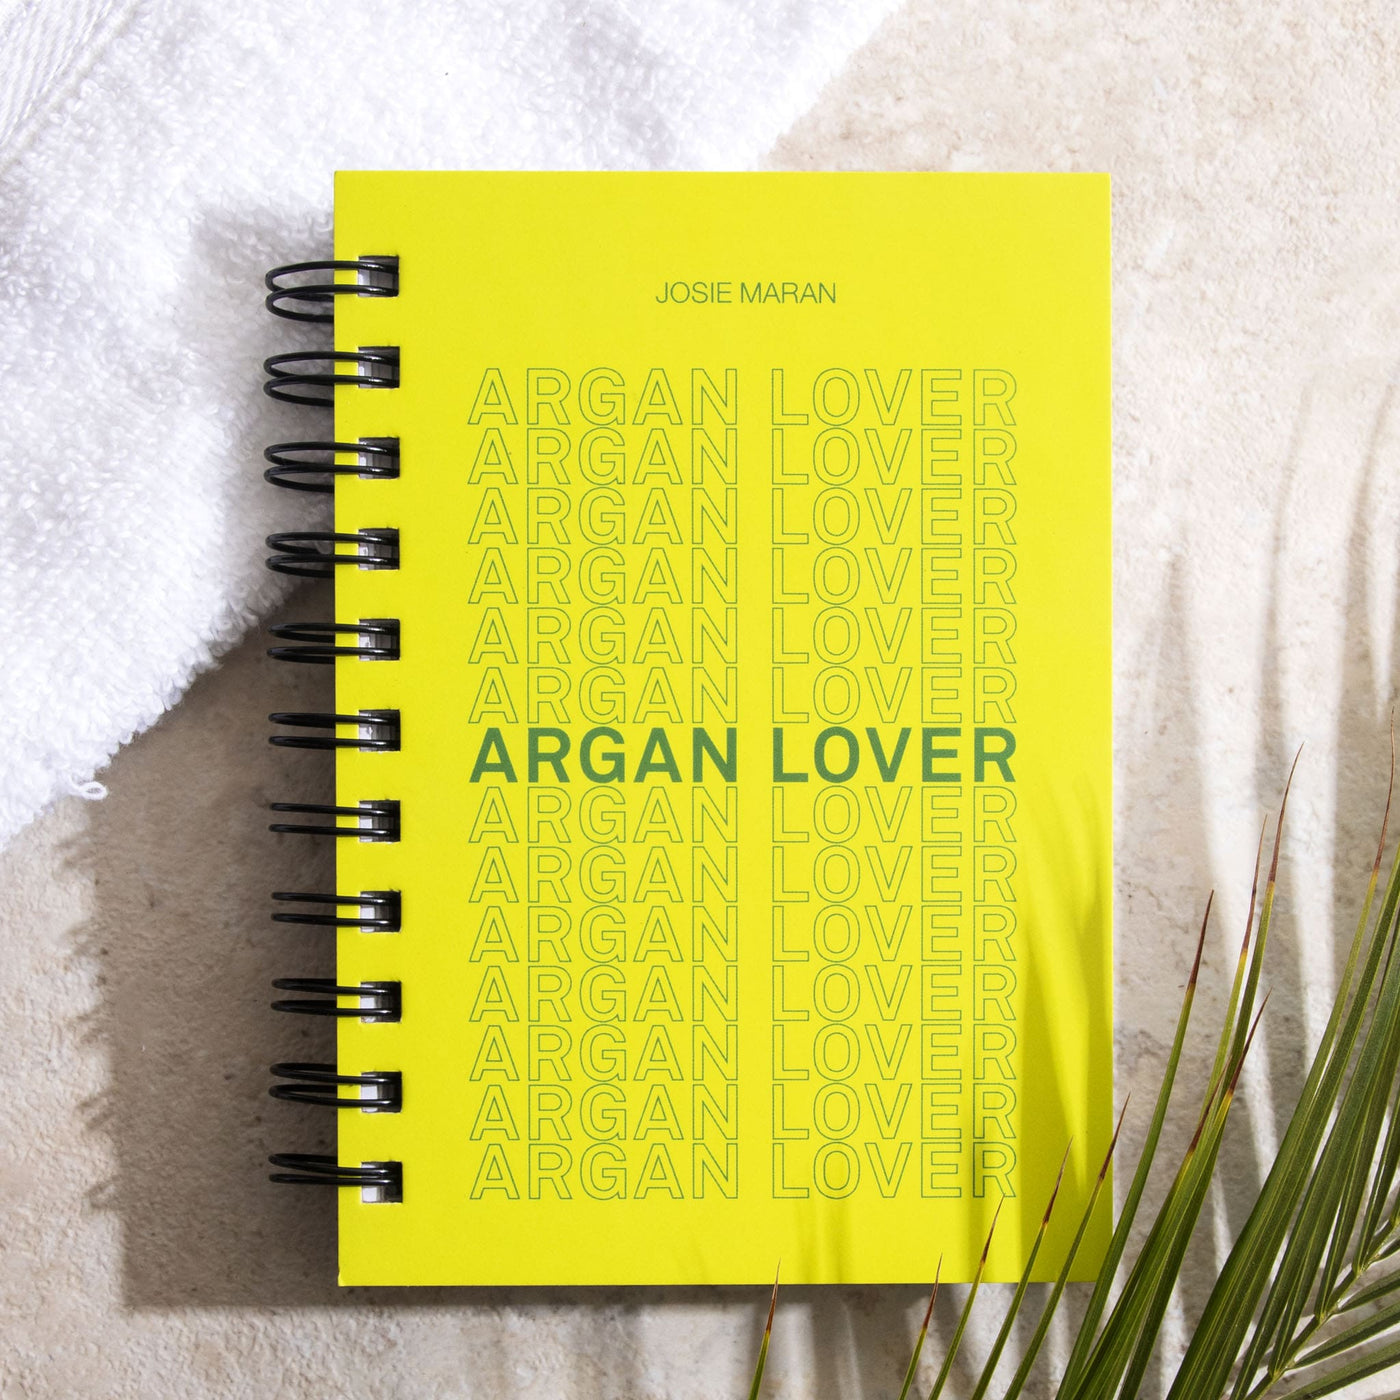 The Argan Lover Notebook